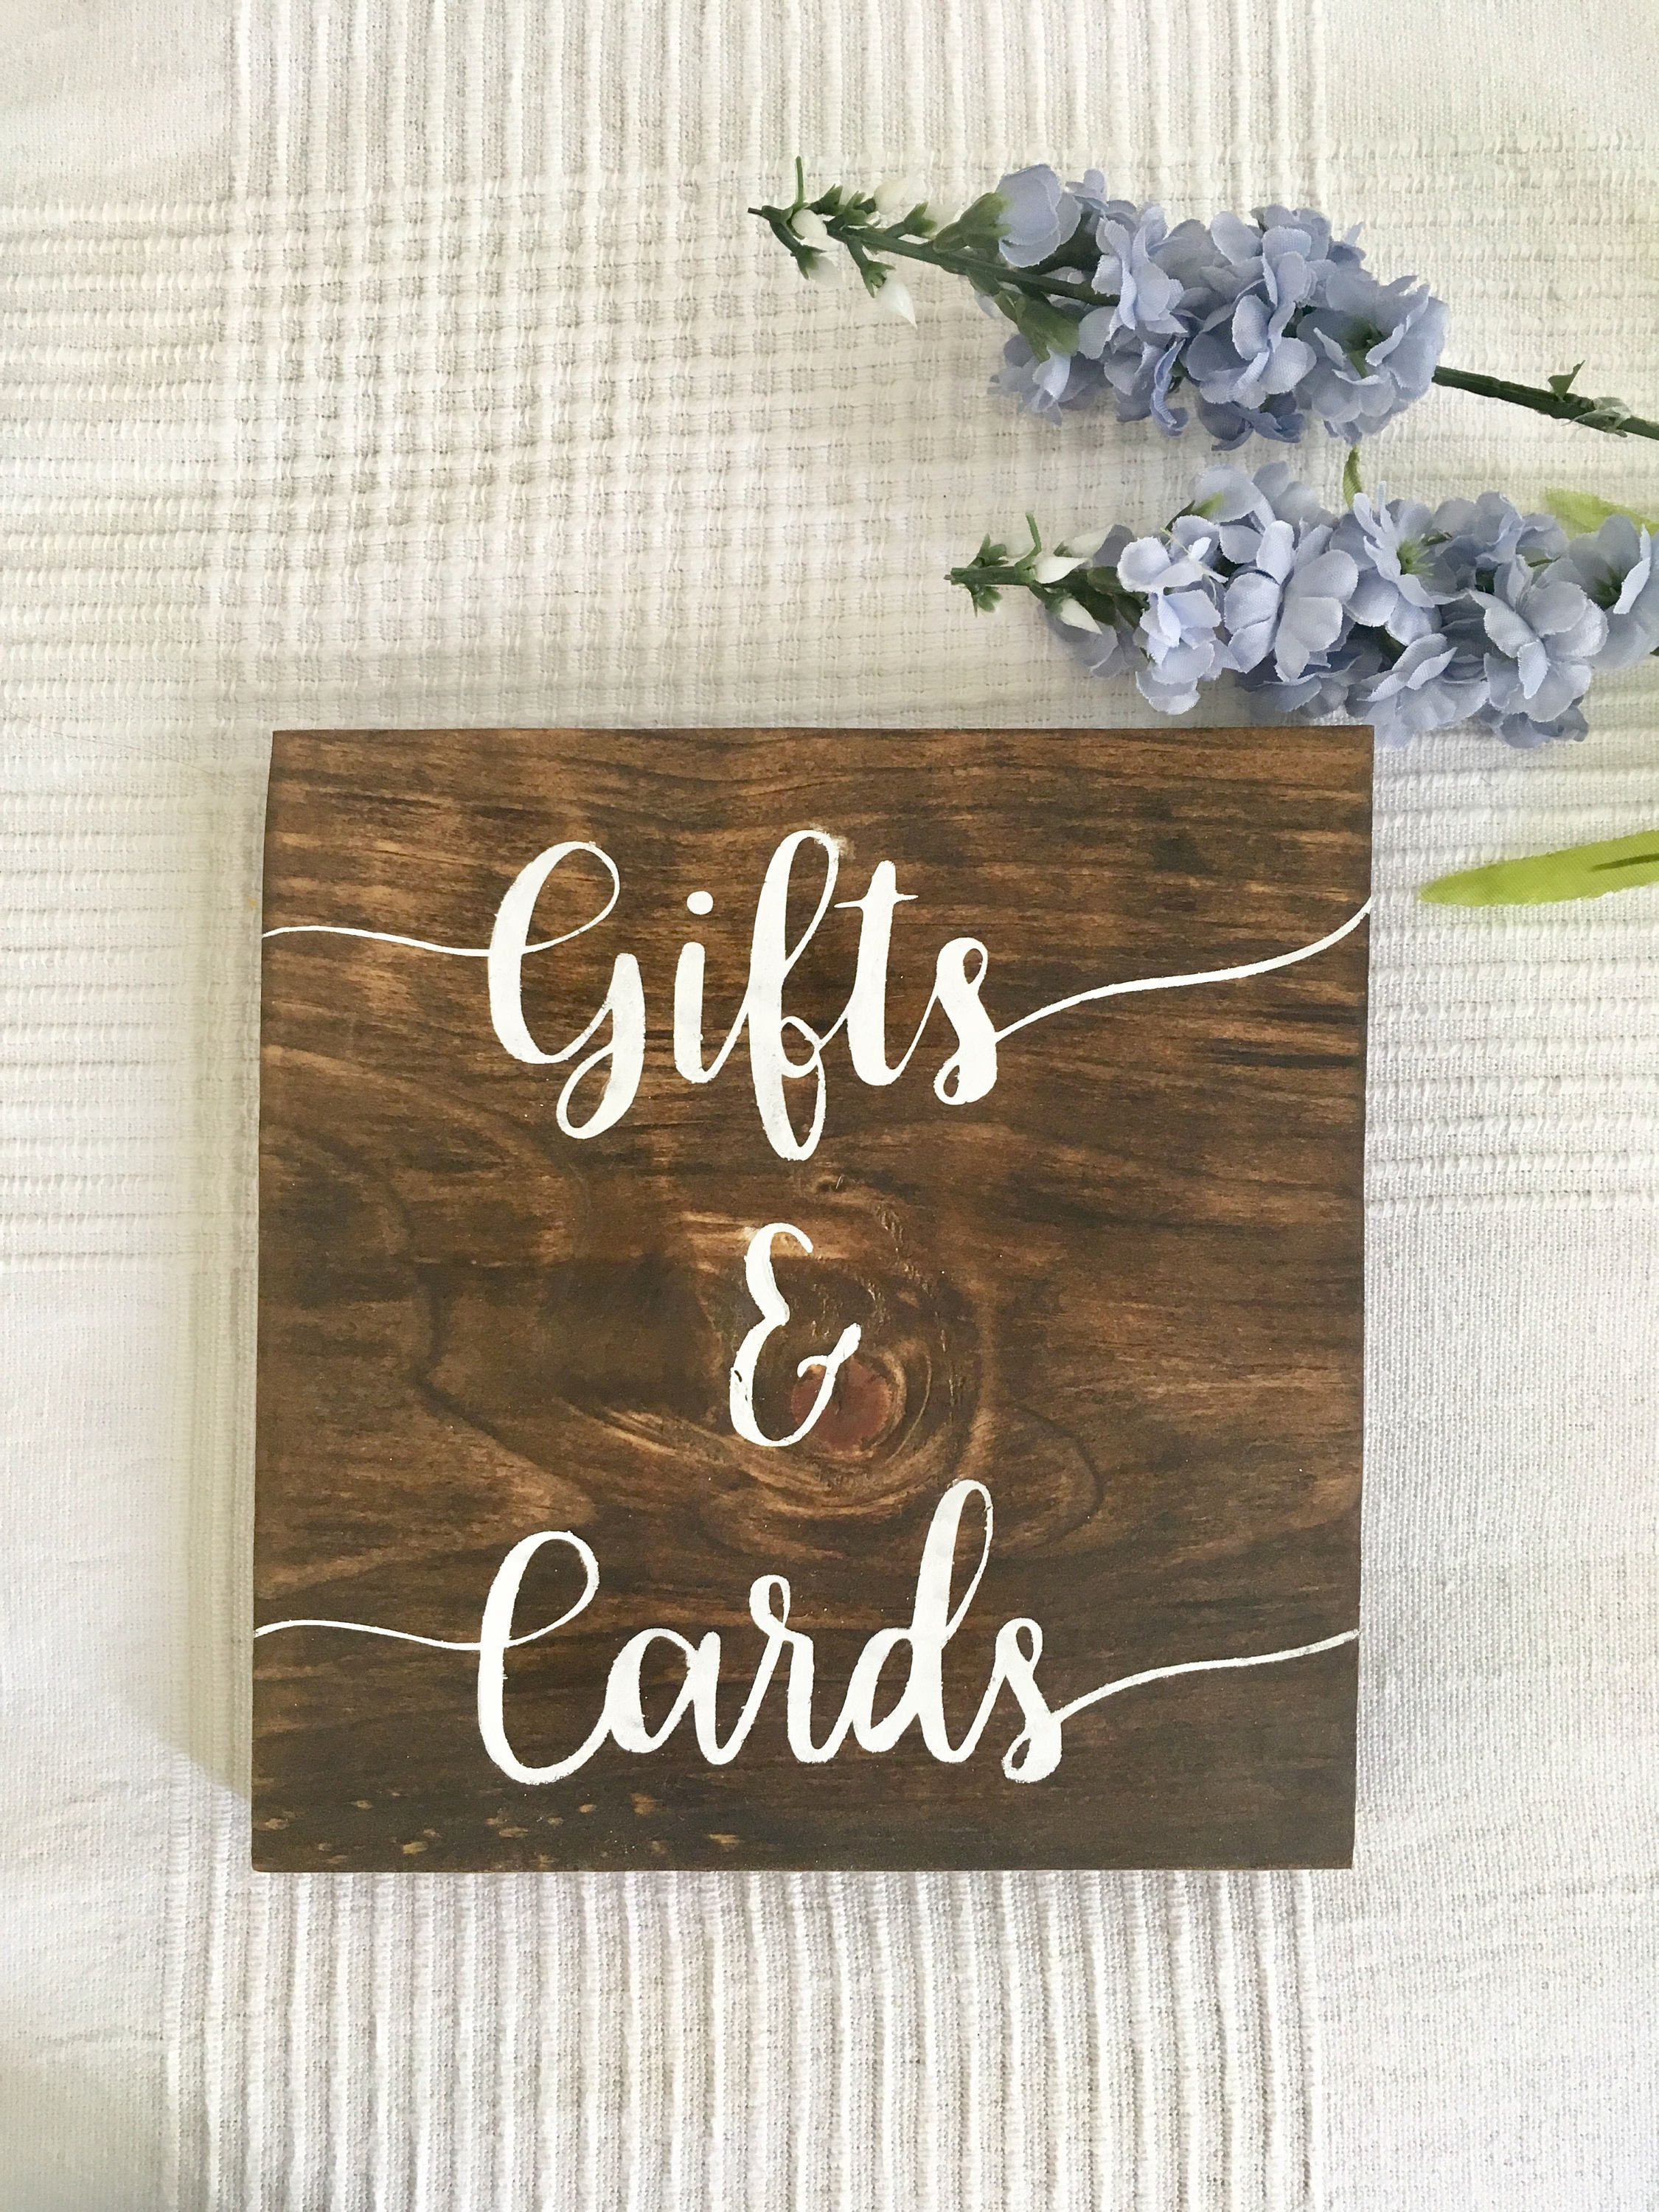 Gifts And Cards Sign Wooden Wedding Table Signs Used Decor Rehearsal Dinner Rustic Bridal Shower I Do Bbq Centerpiece